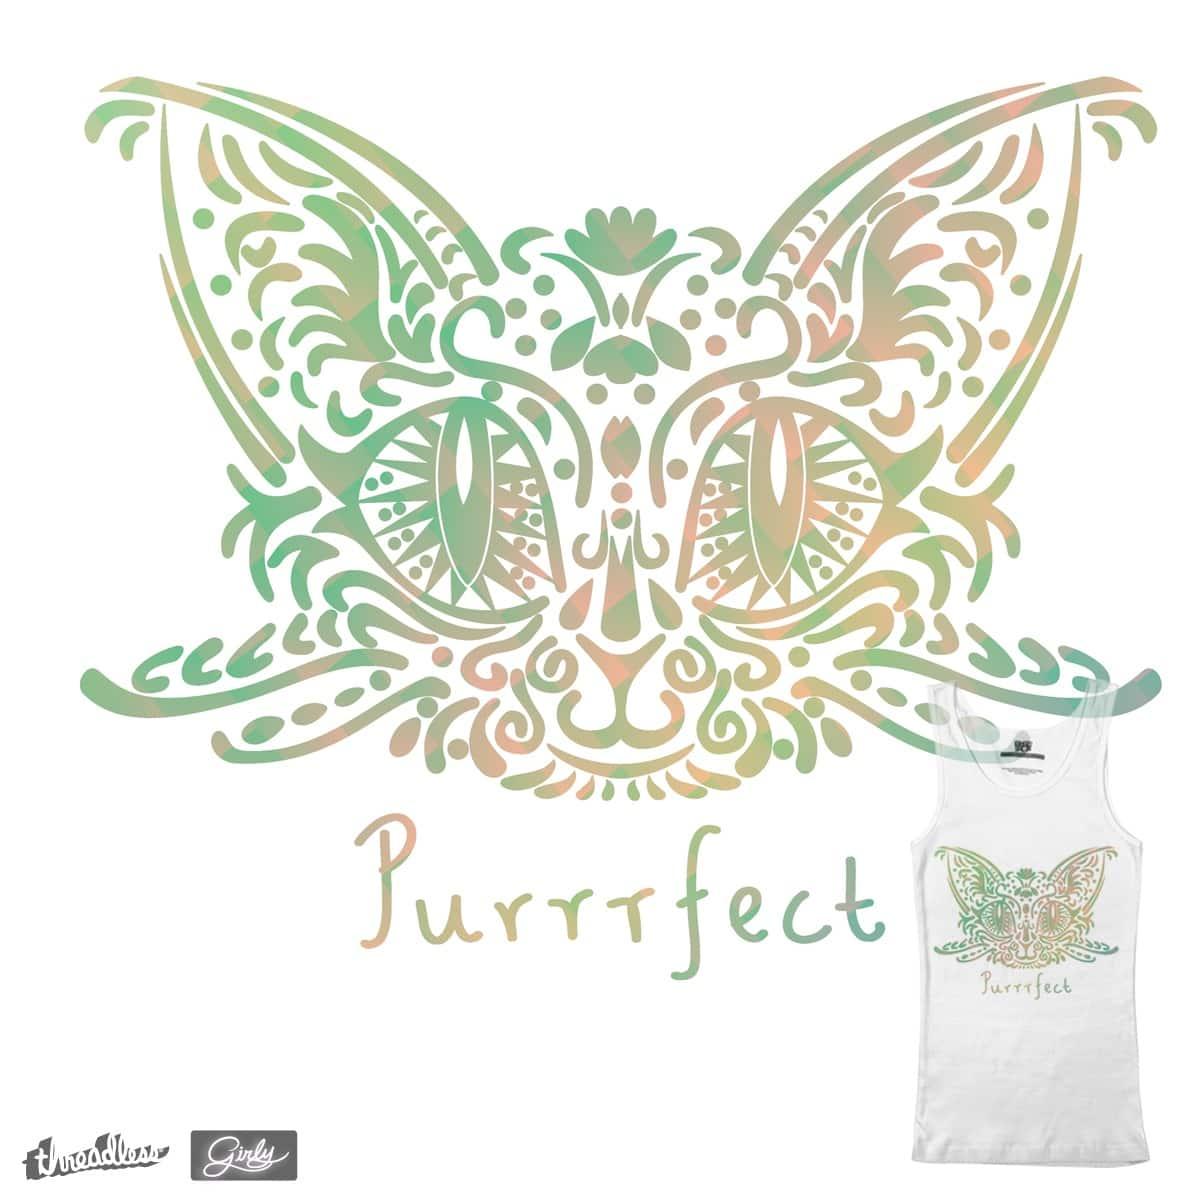 Purrrfectly Girly by m.ninfa on Threadless